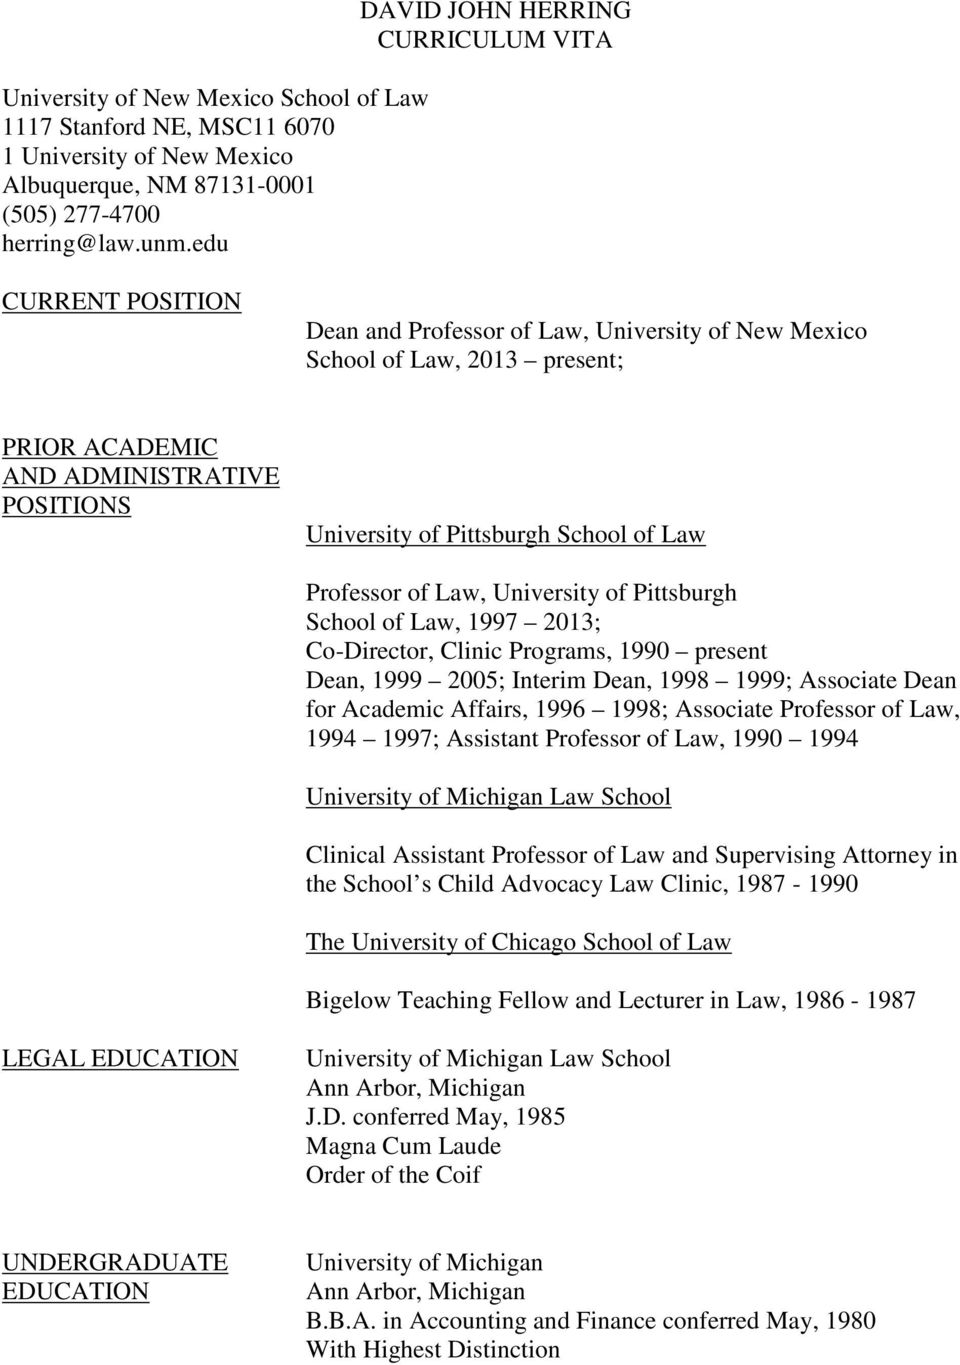 Pittsburgh School of Law Professor of Law, University of Pittsburgh School of Law, 1997 2013; Co-Director, Clinic Programs, 1990 present Dean, 1999 2005; Interim Dean, 1998 1999; Associate Dean for